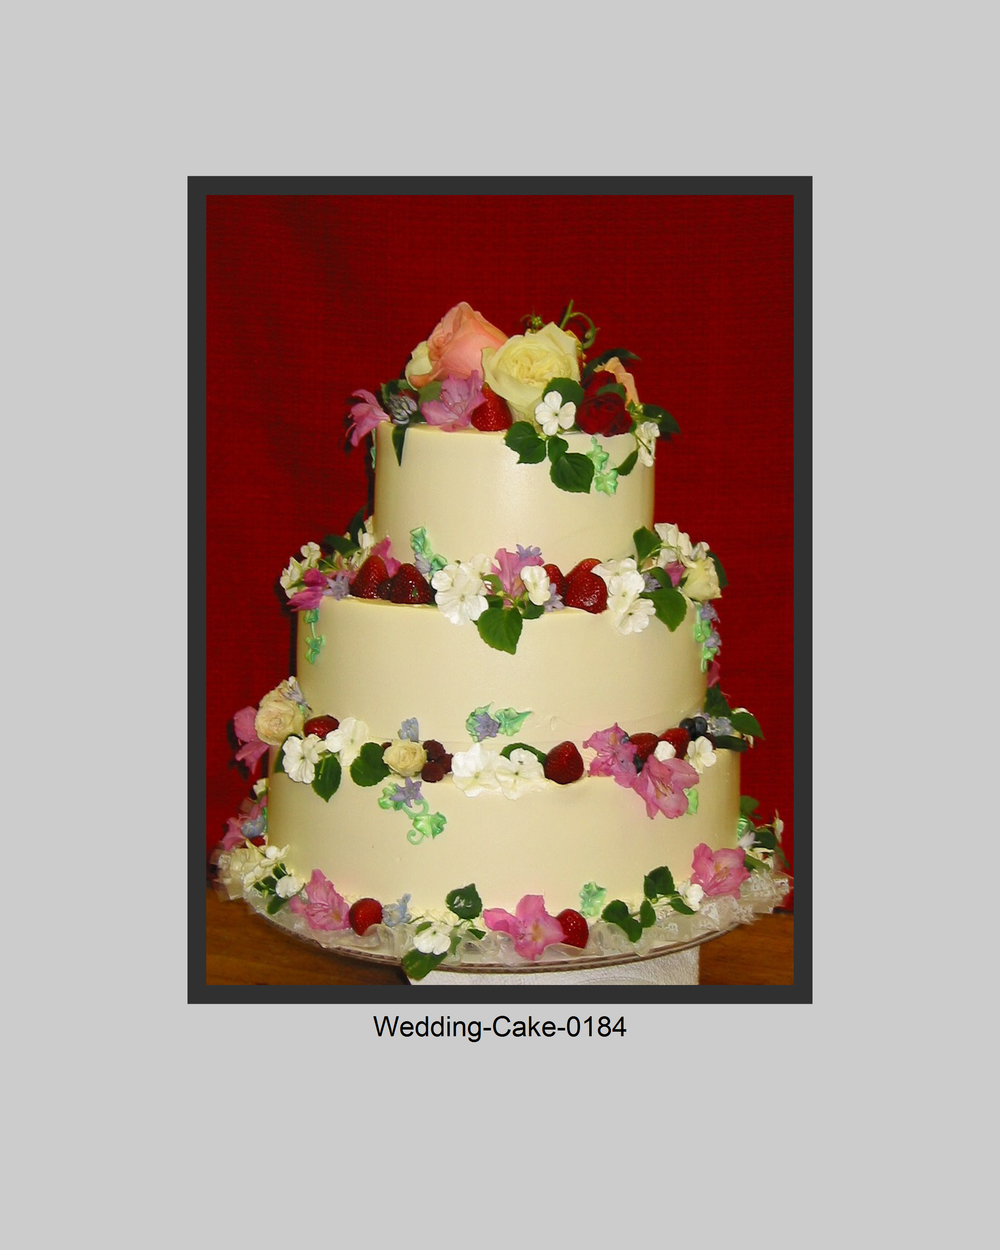 Wedding-Cake-Prints-0184.jpg